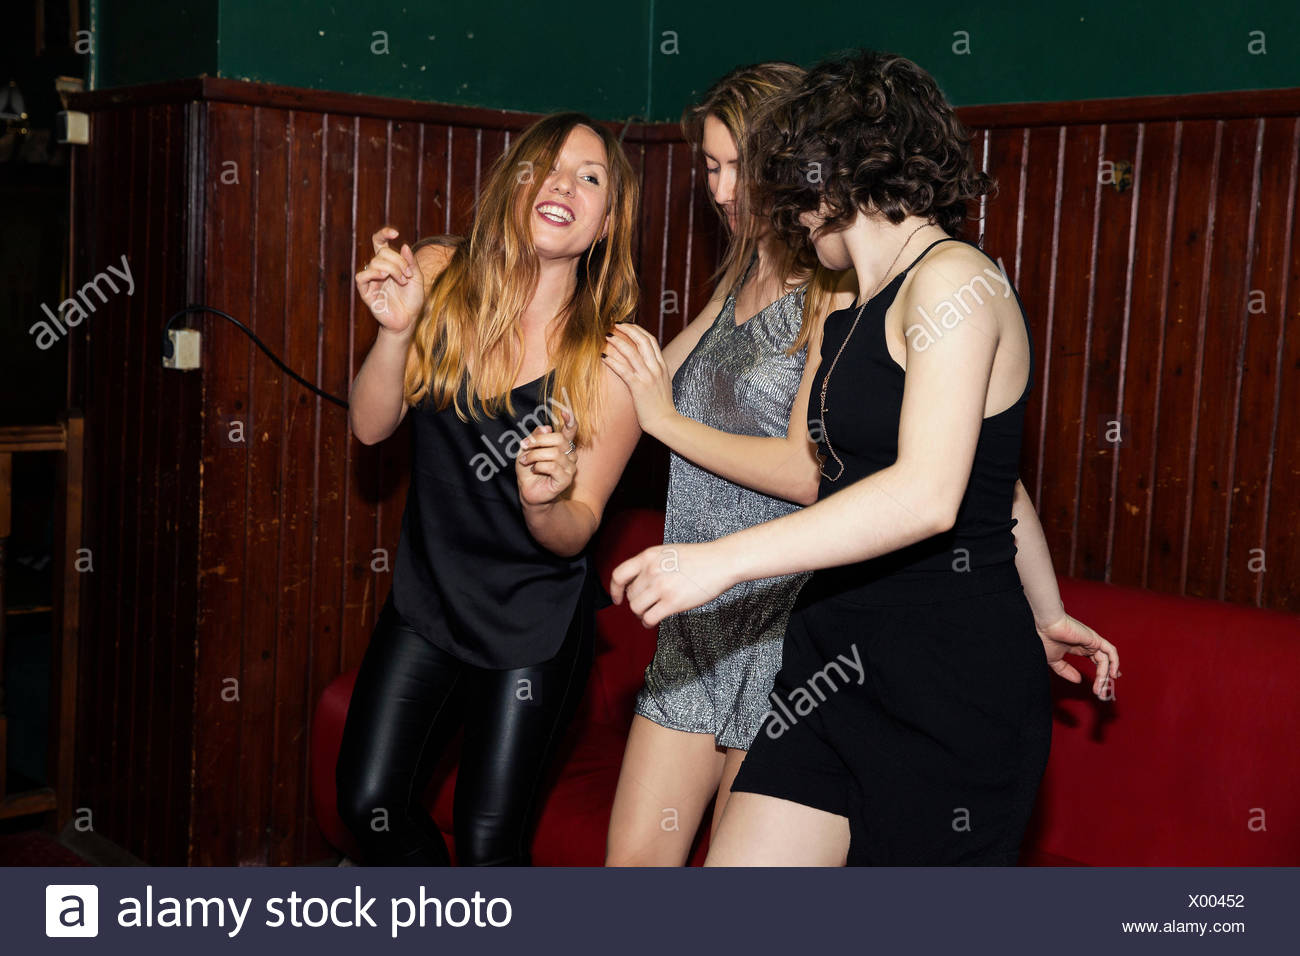 Three adult female friends dancing together in club on night out - Stock Image